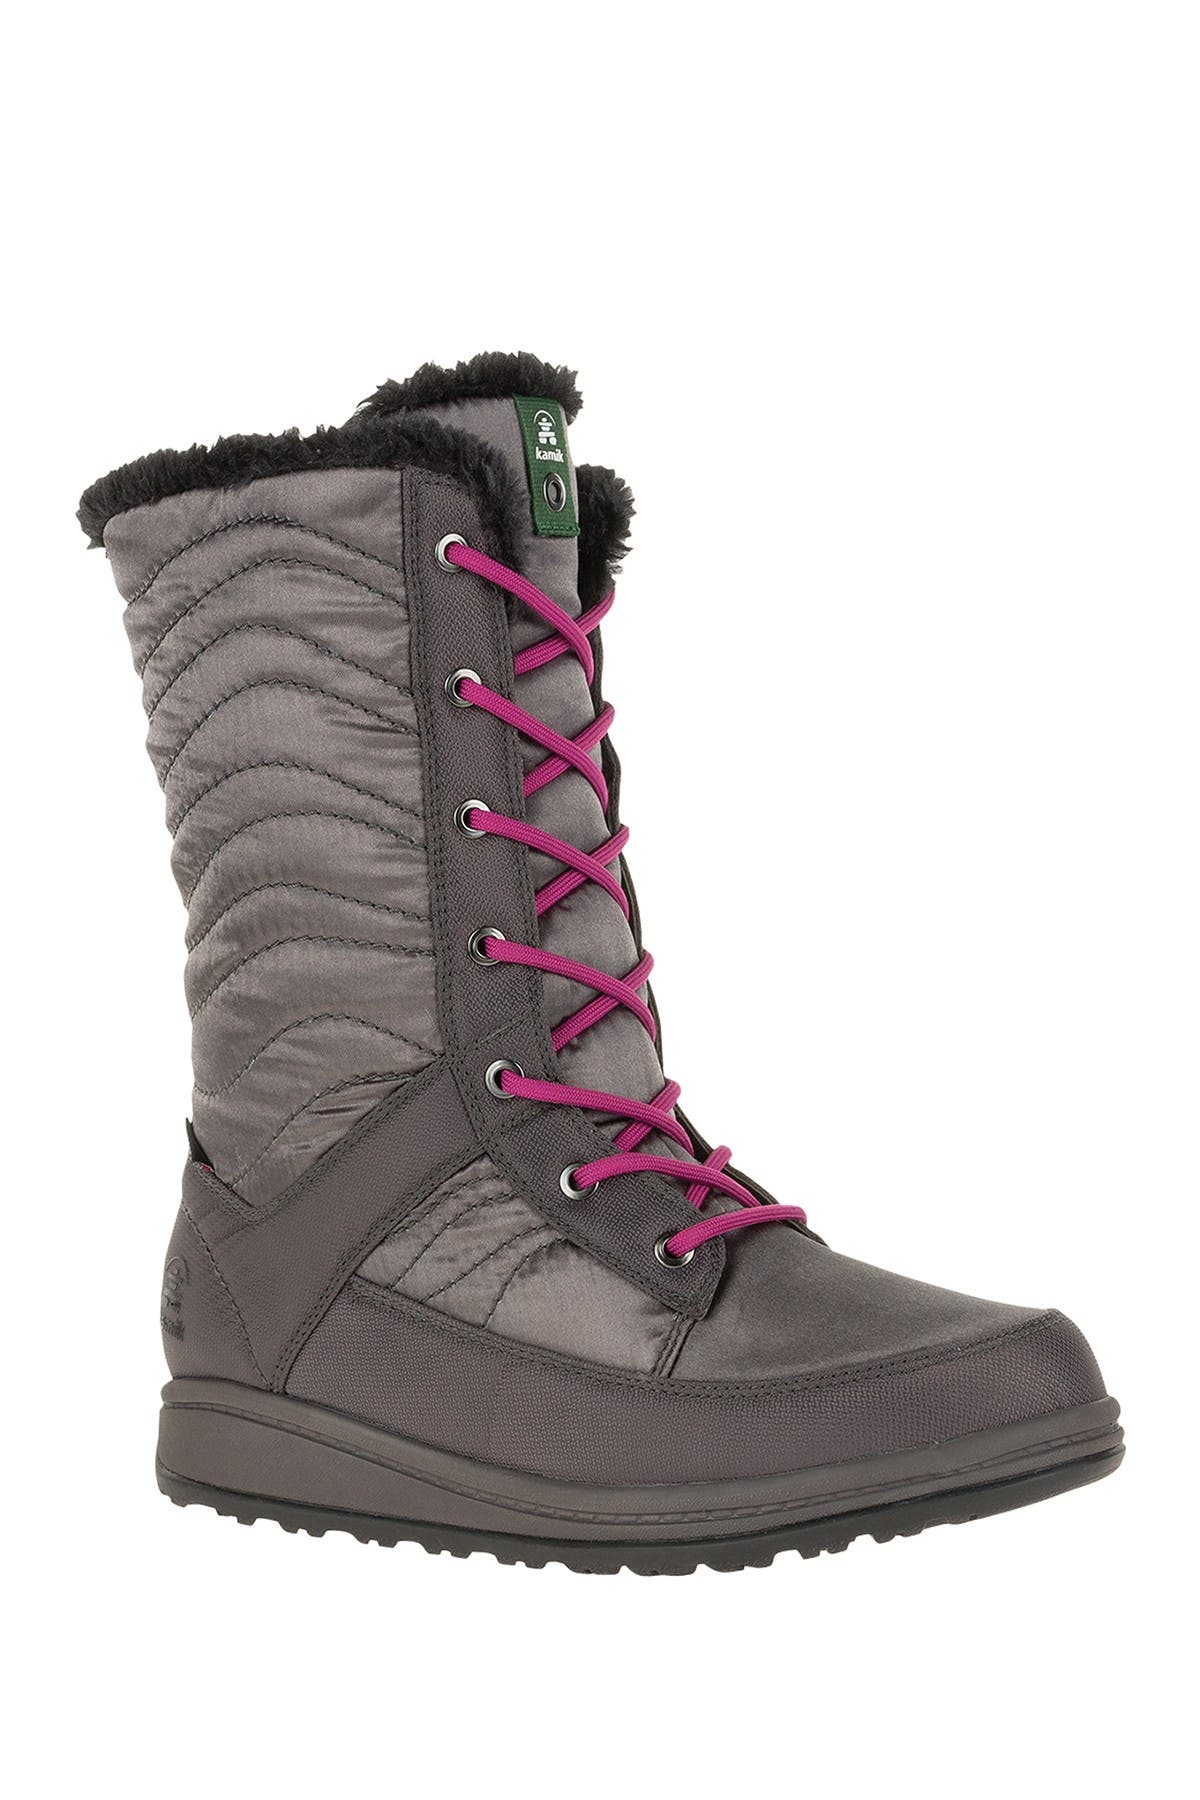 Image of Kamik Bailee Waterproof Faux Shearling Lined Snow Boot